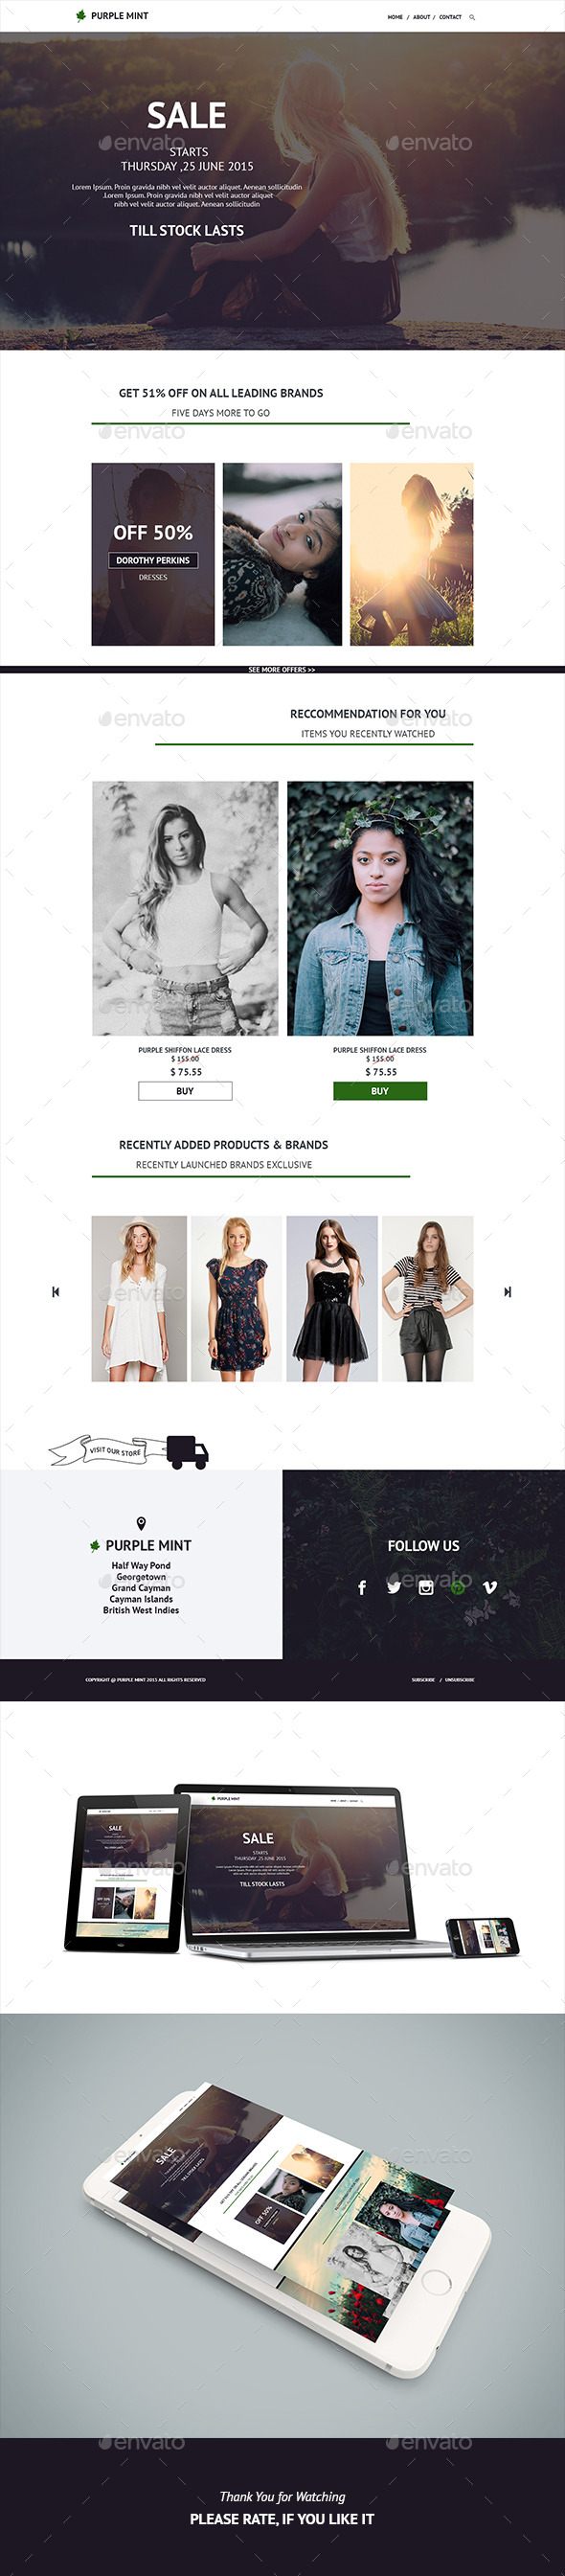 GraphicRiver Purple Mint Fashion E-Newsletter 11957238